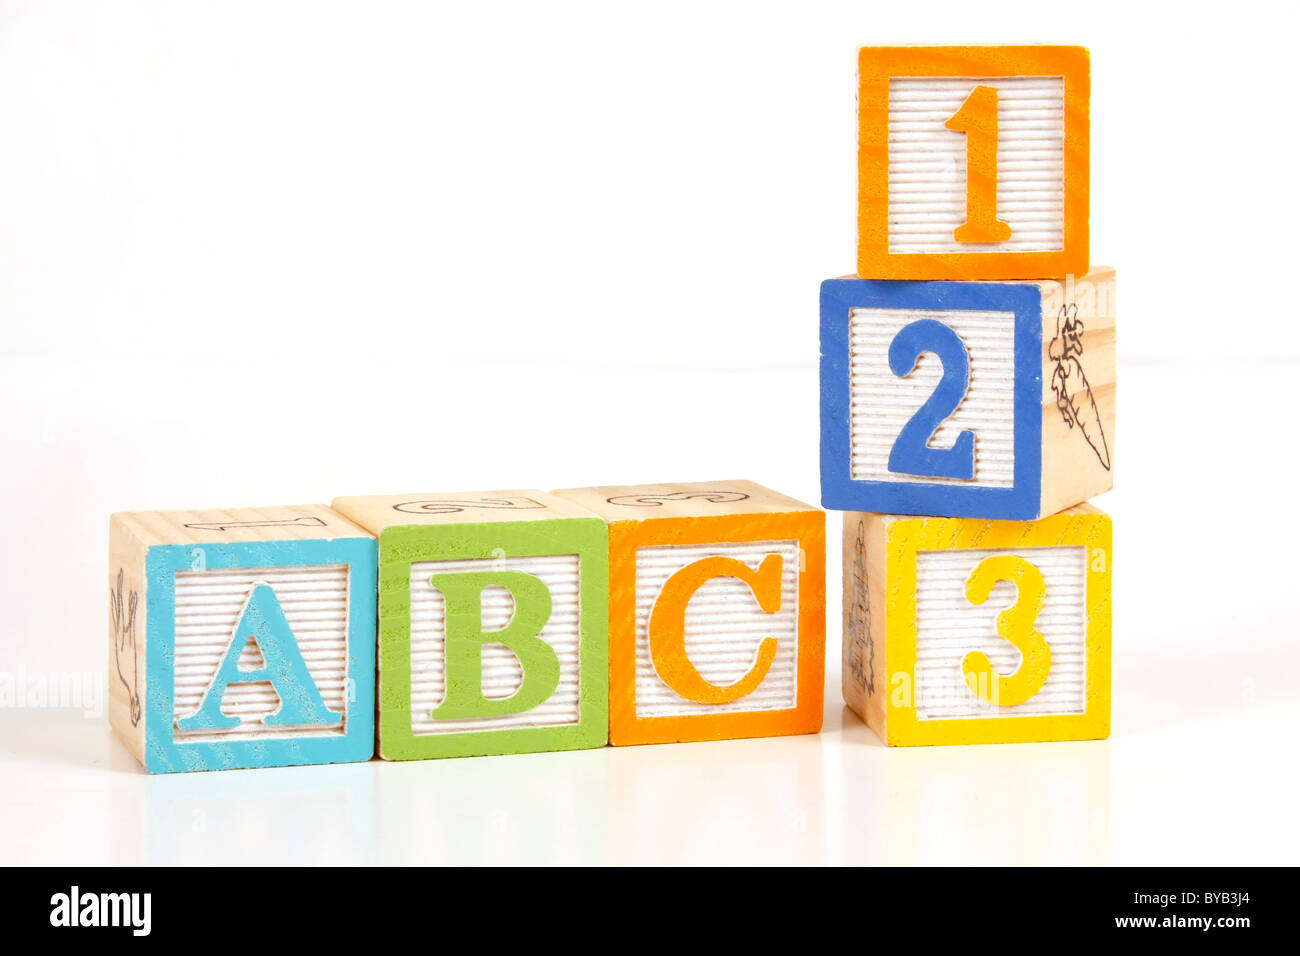 Childrens colorful blocks say abc and 123. Stock Photo